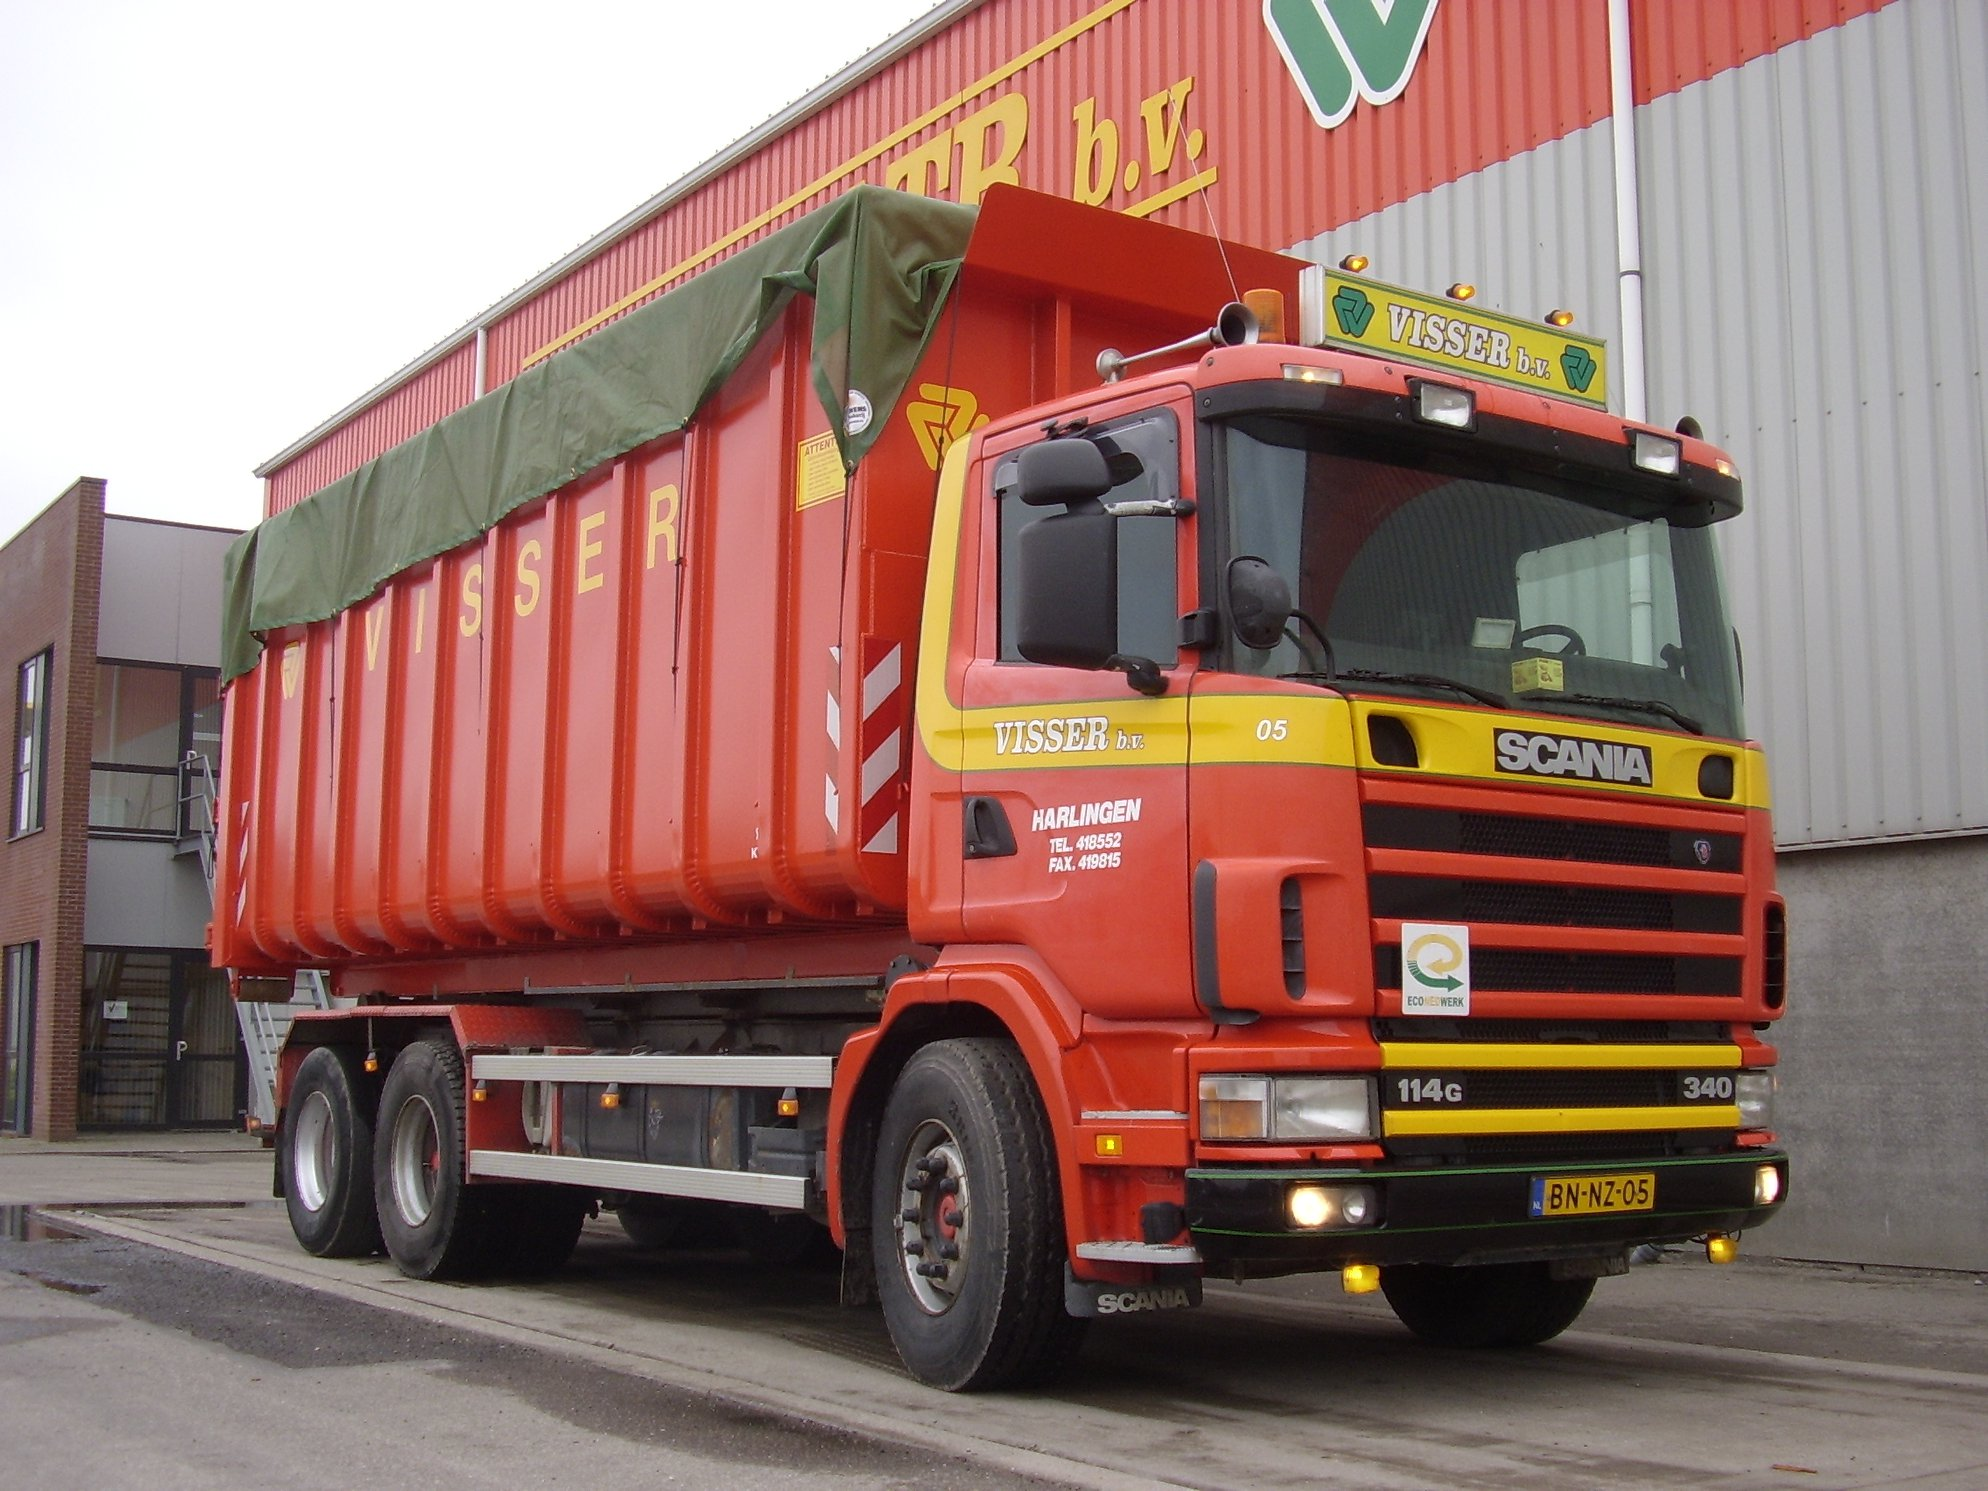 Scania-114G-340-pk-2003-is-een-NCH-kabelsysteem